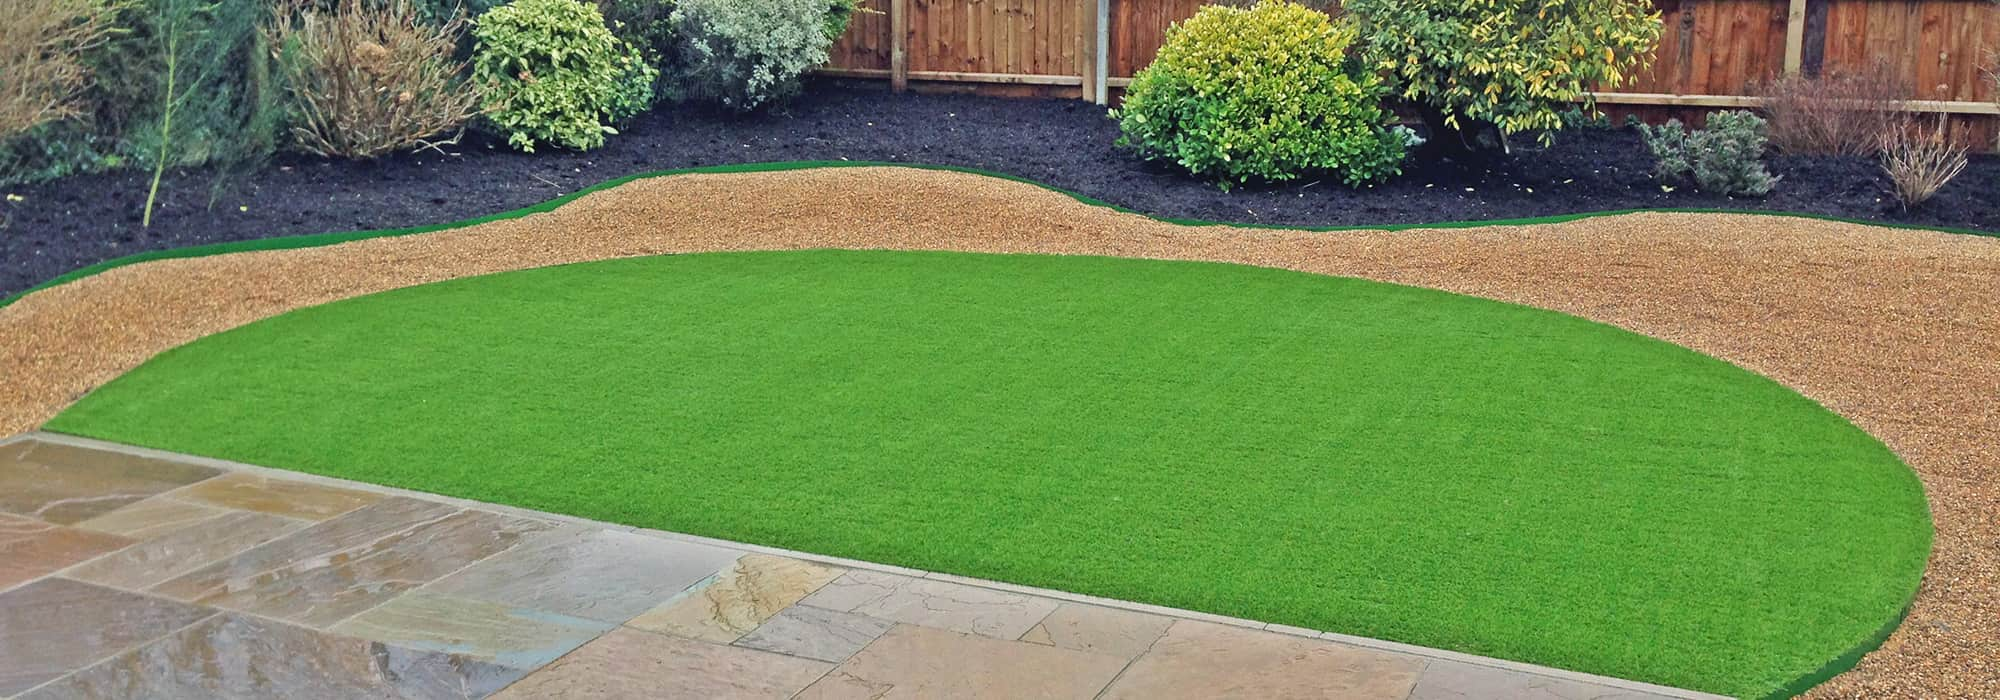 Artificial grass - 2